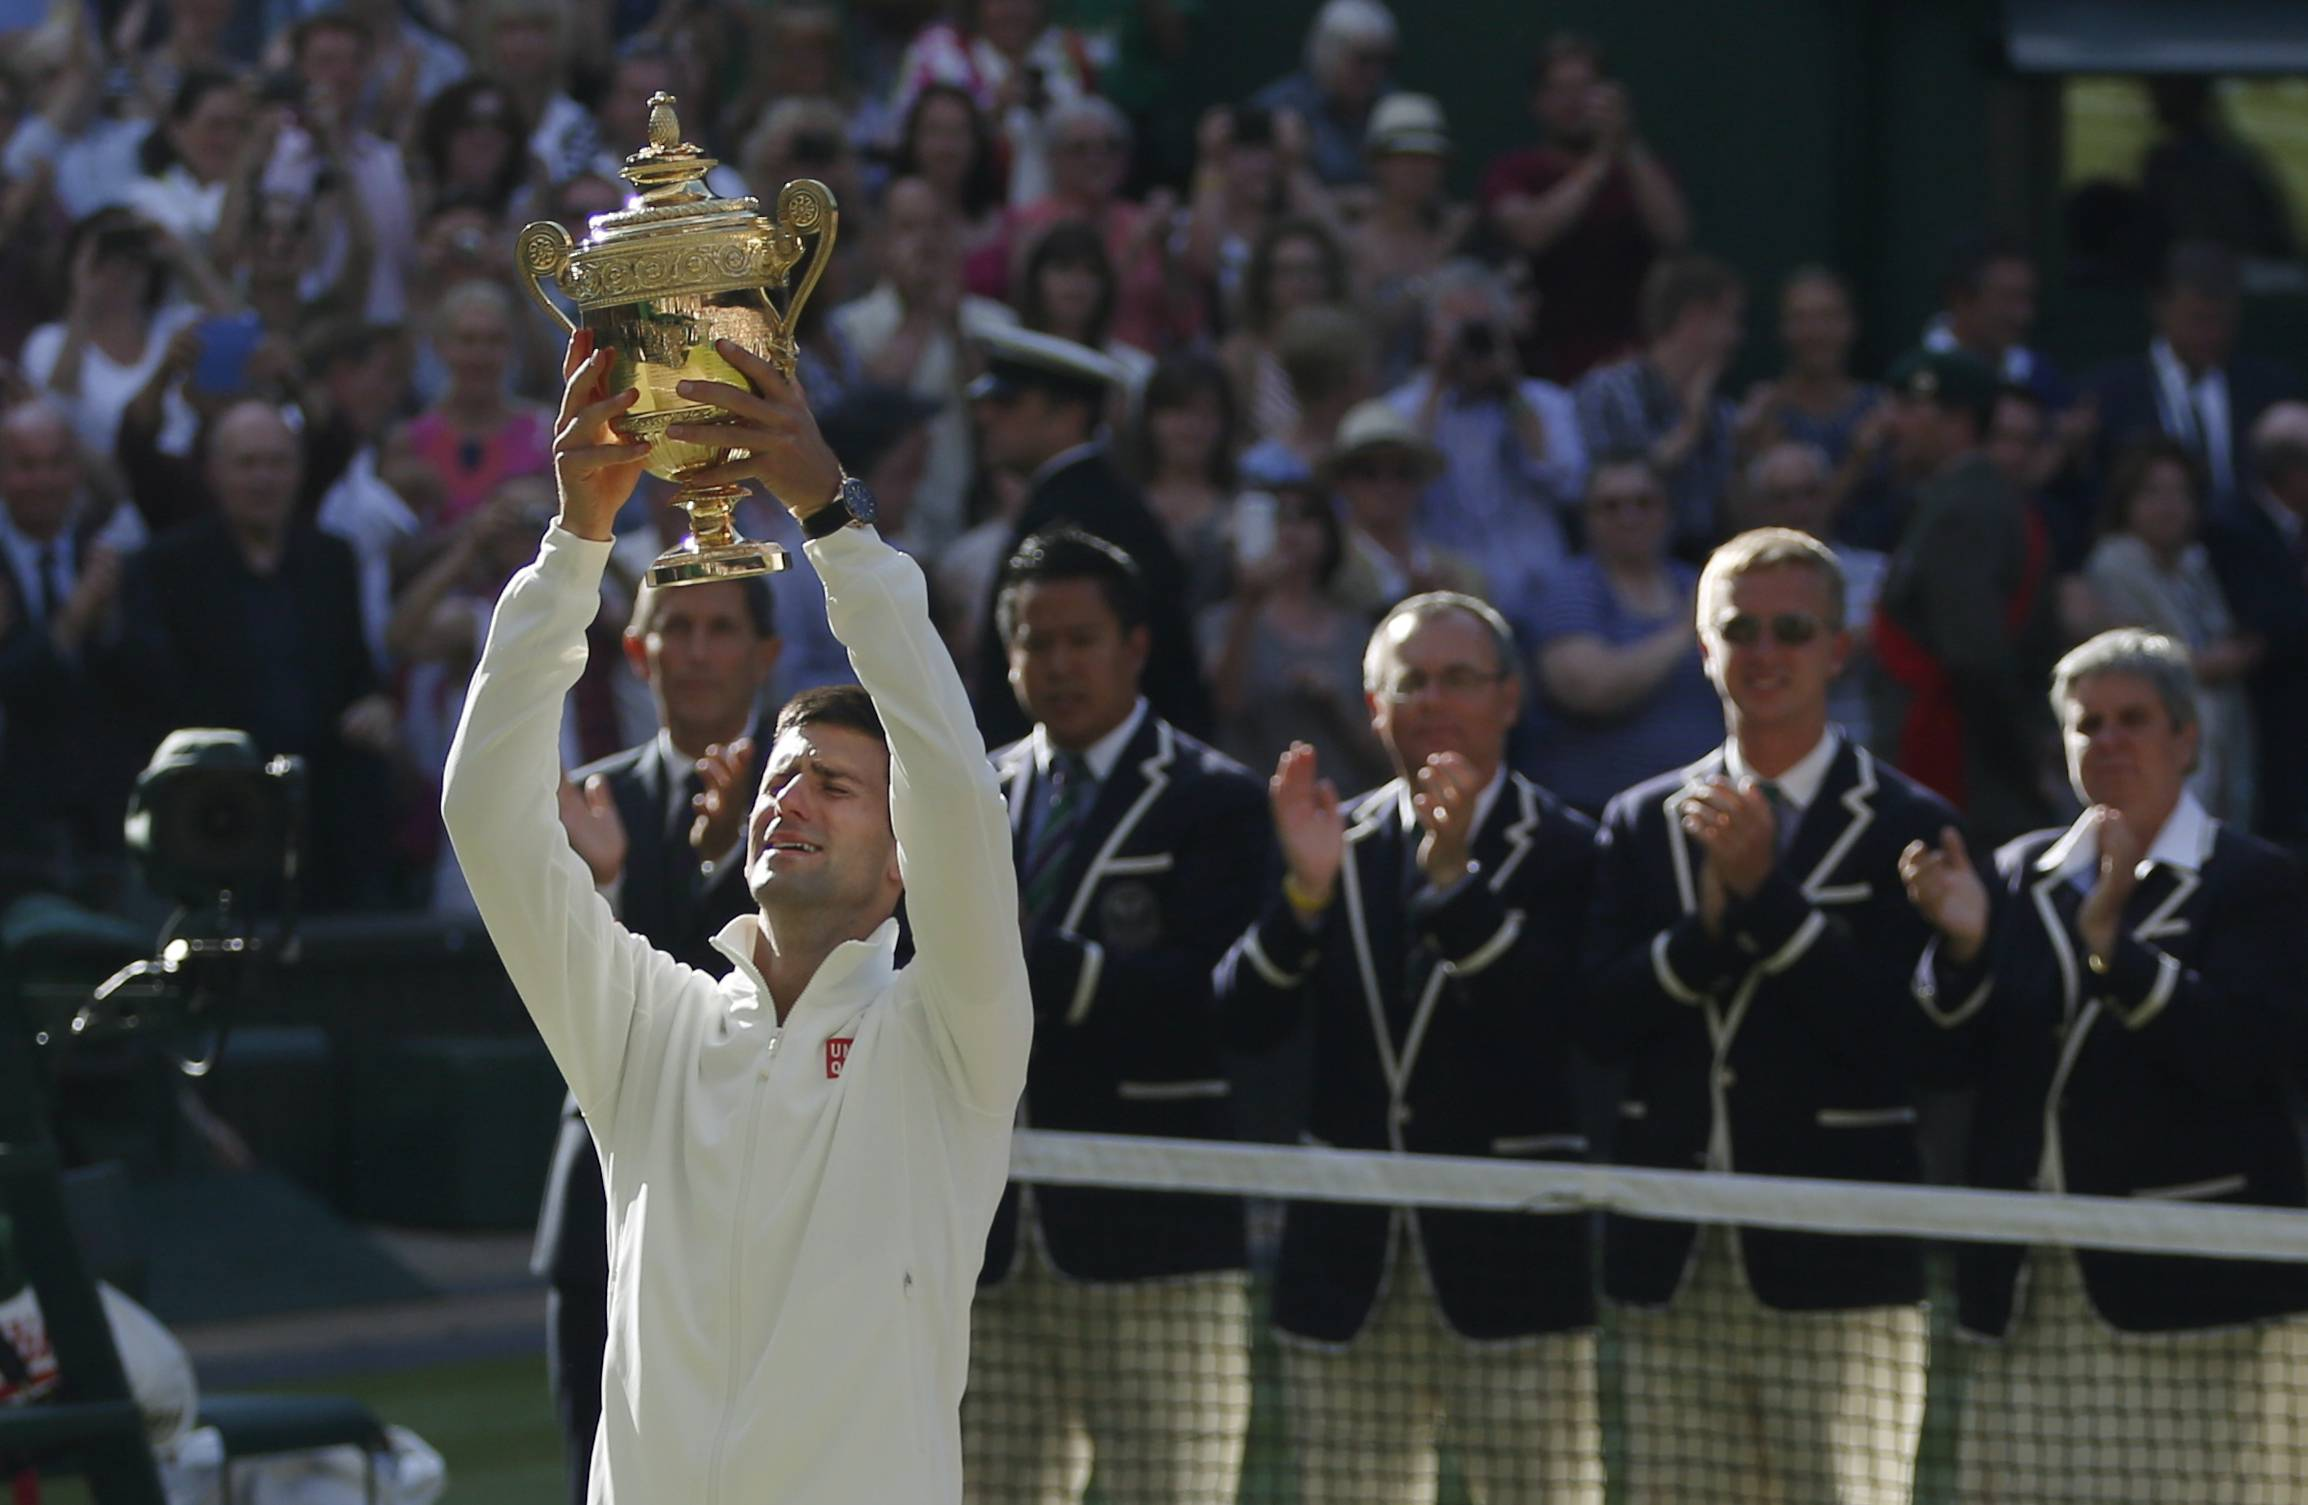 Novak Djokovic of Serbia holds the trophy after defeating Roger Federer of Switzerland in the men's singles final at the All England Lawn Tennis Championships in Wimbledon, London, Sunday July 6, 2014.